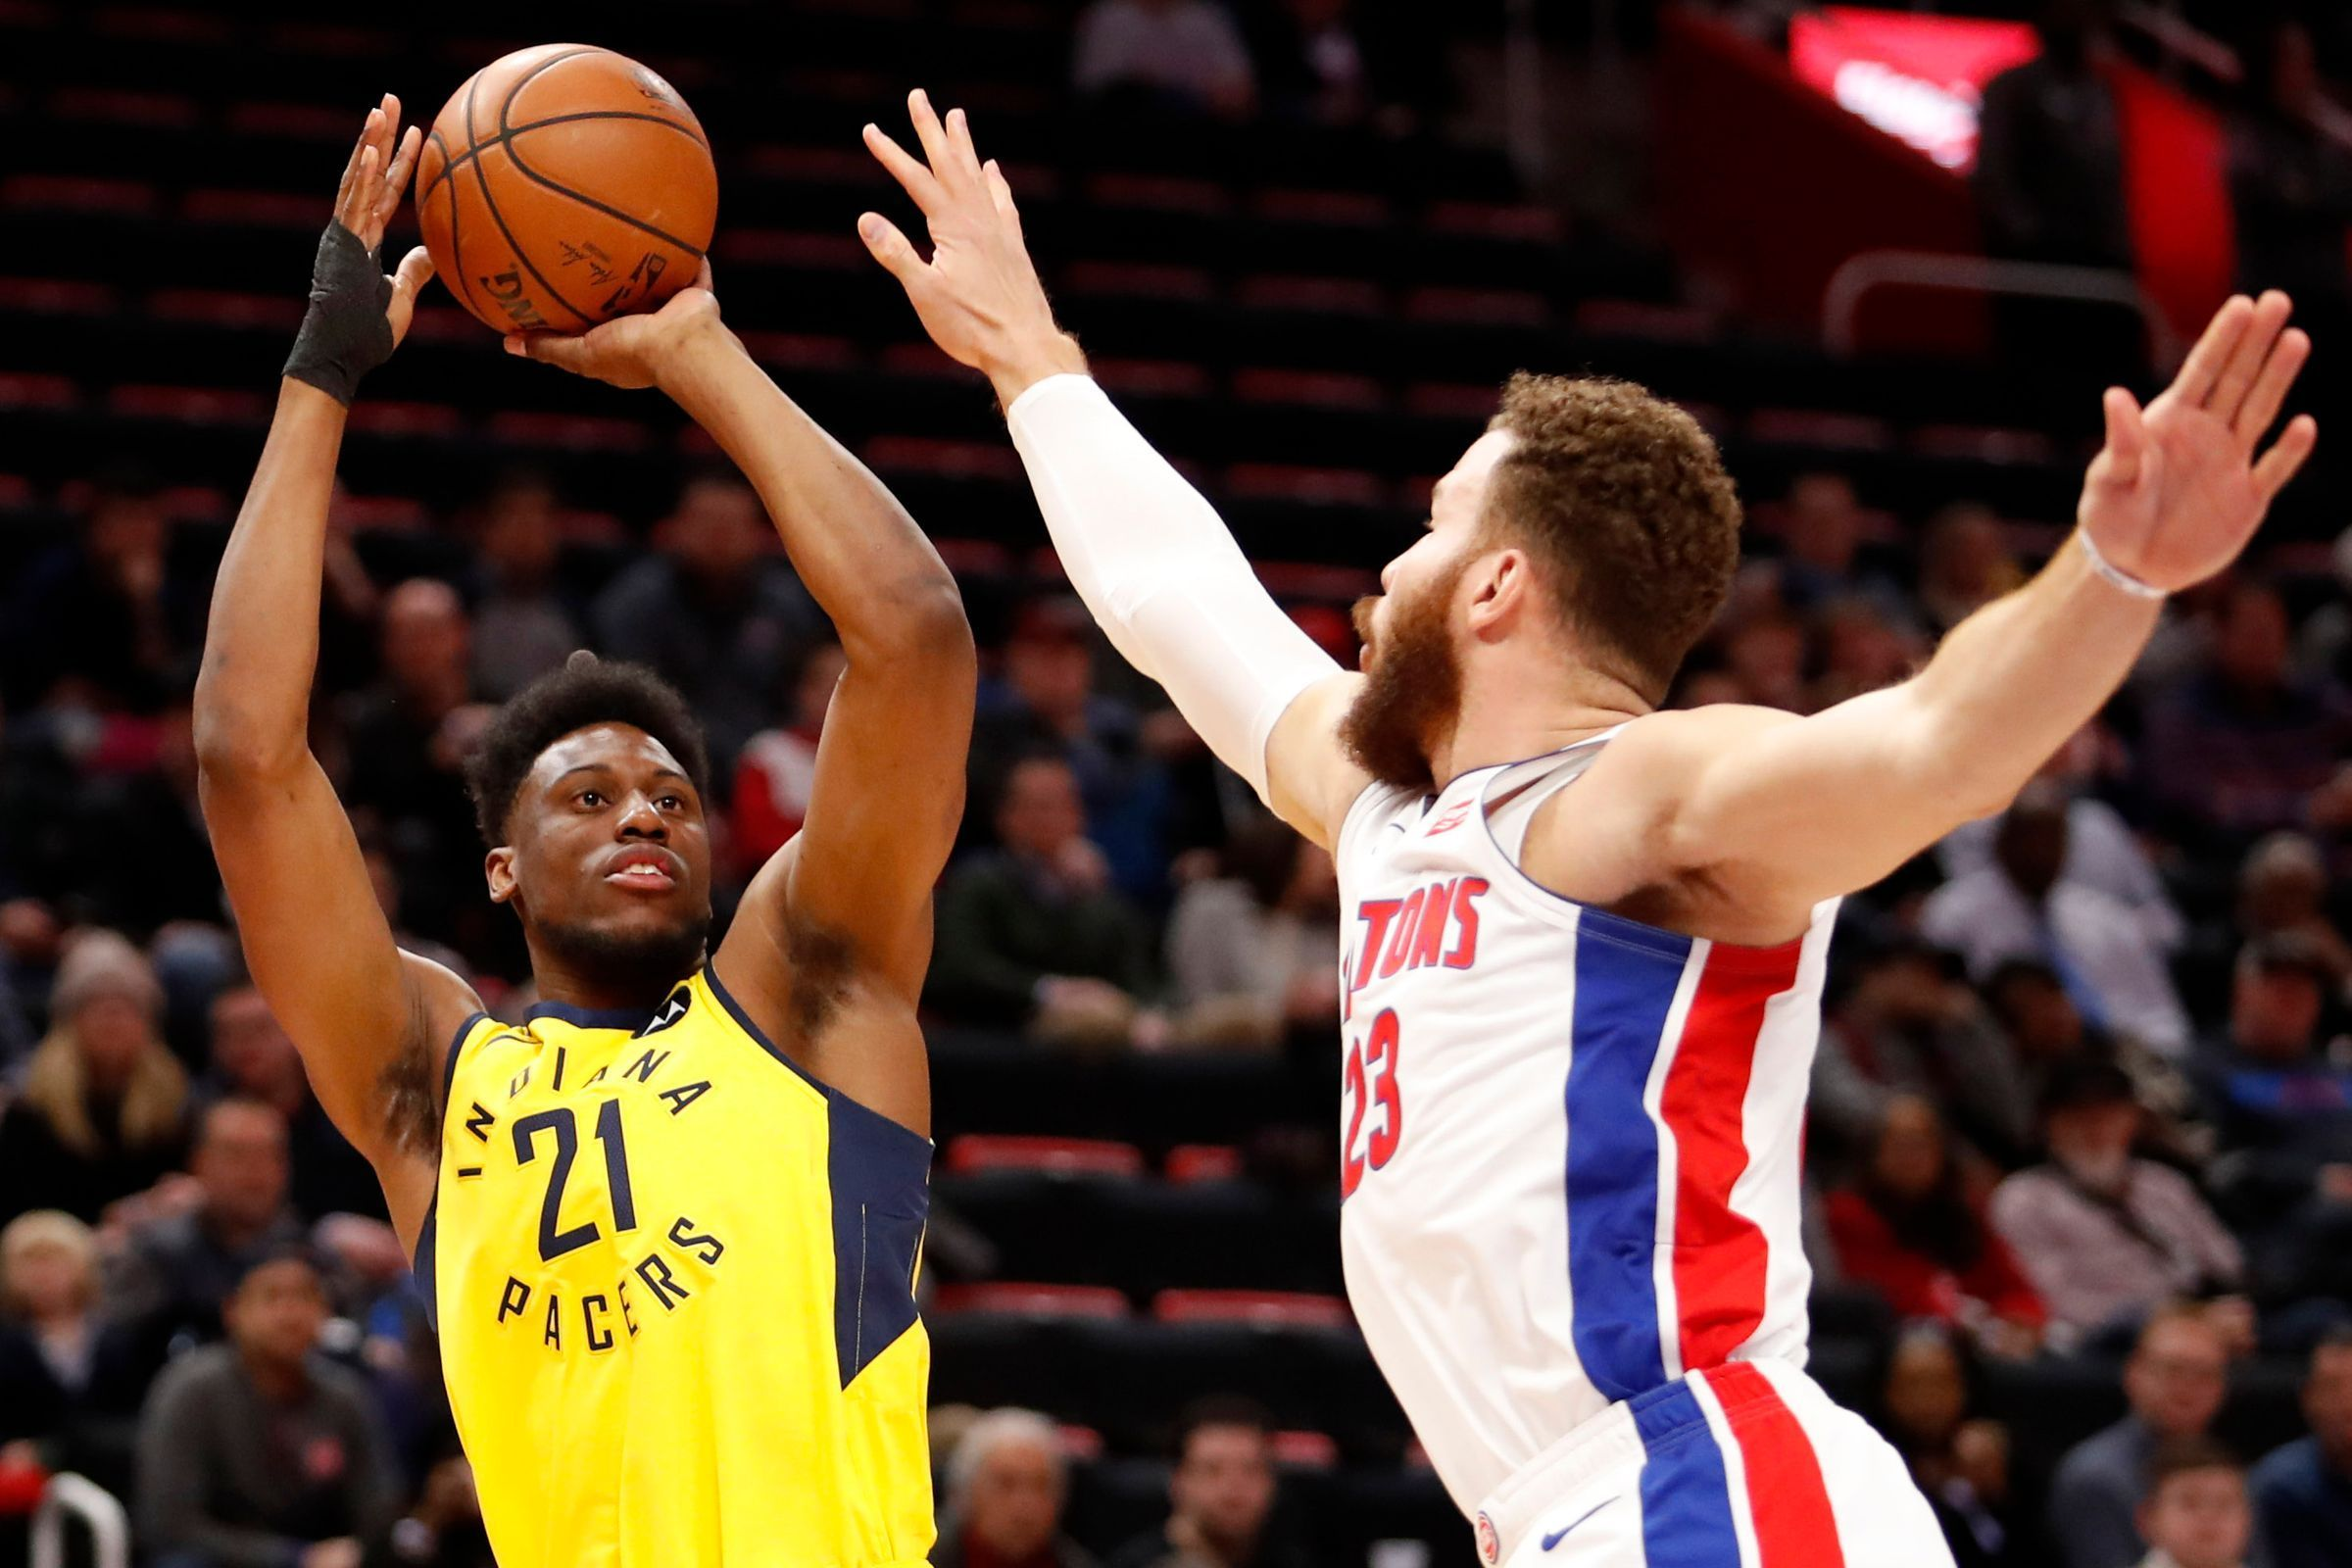 The Pacers Look to Snap Their Four Game Losing Streak Home Against Detroit